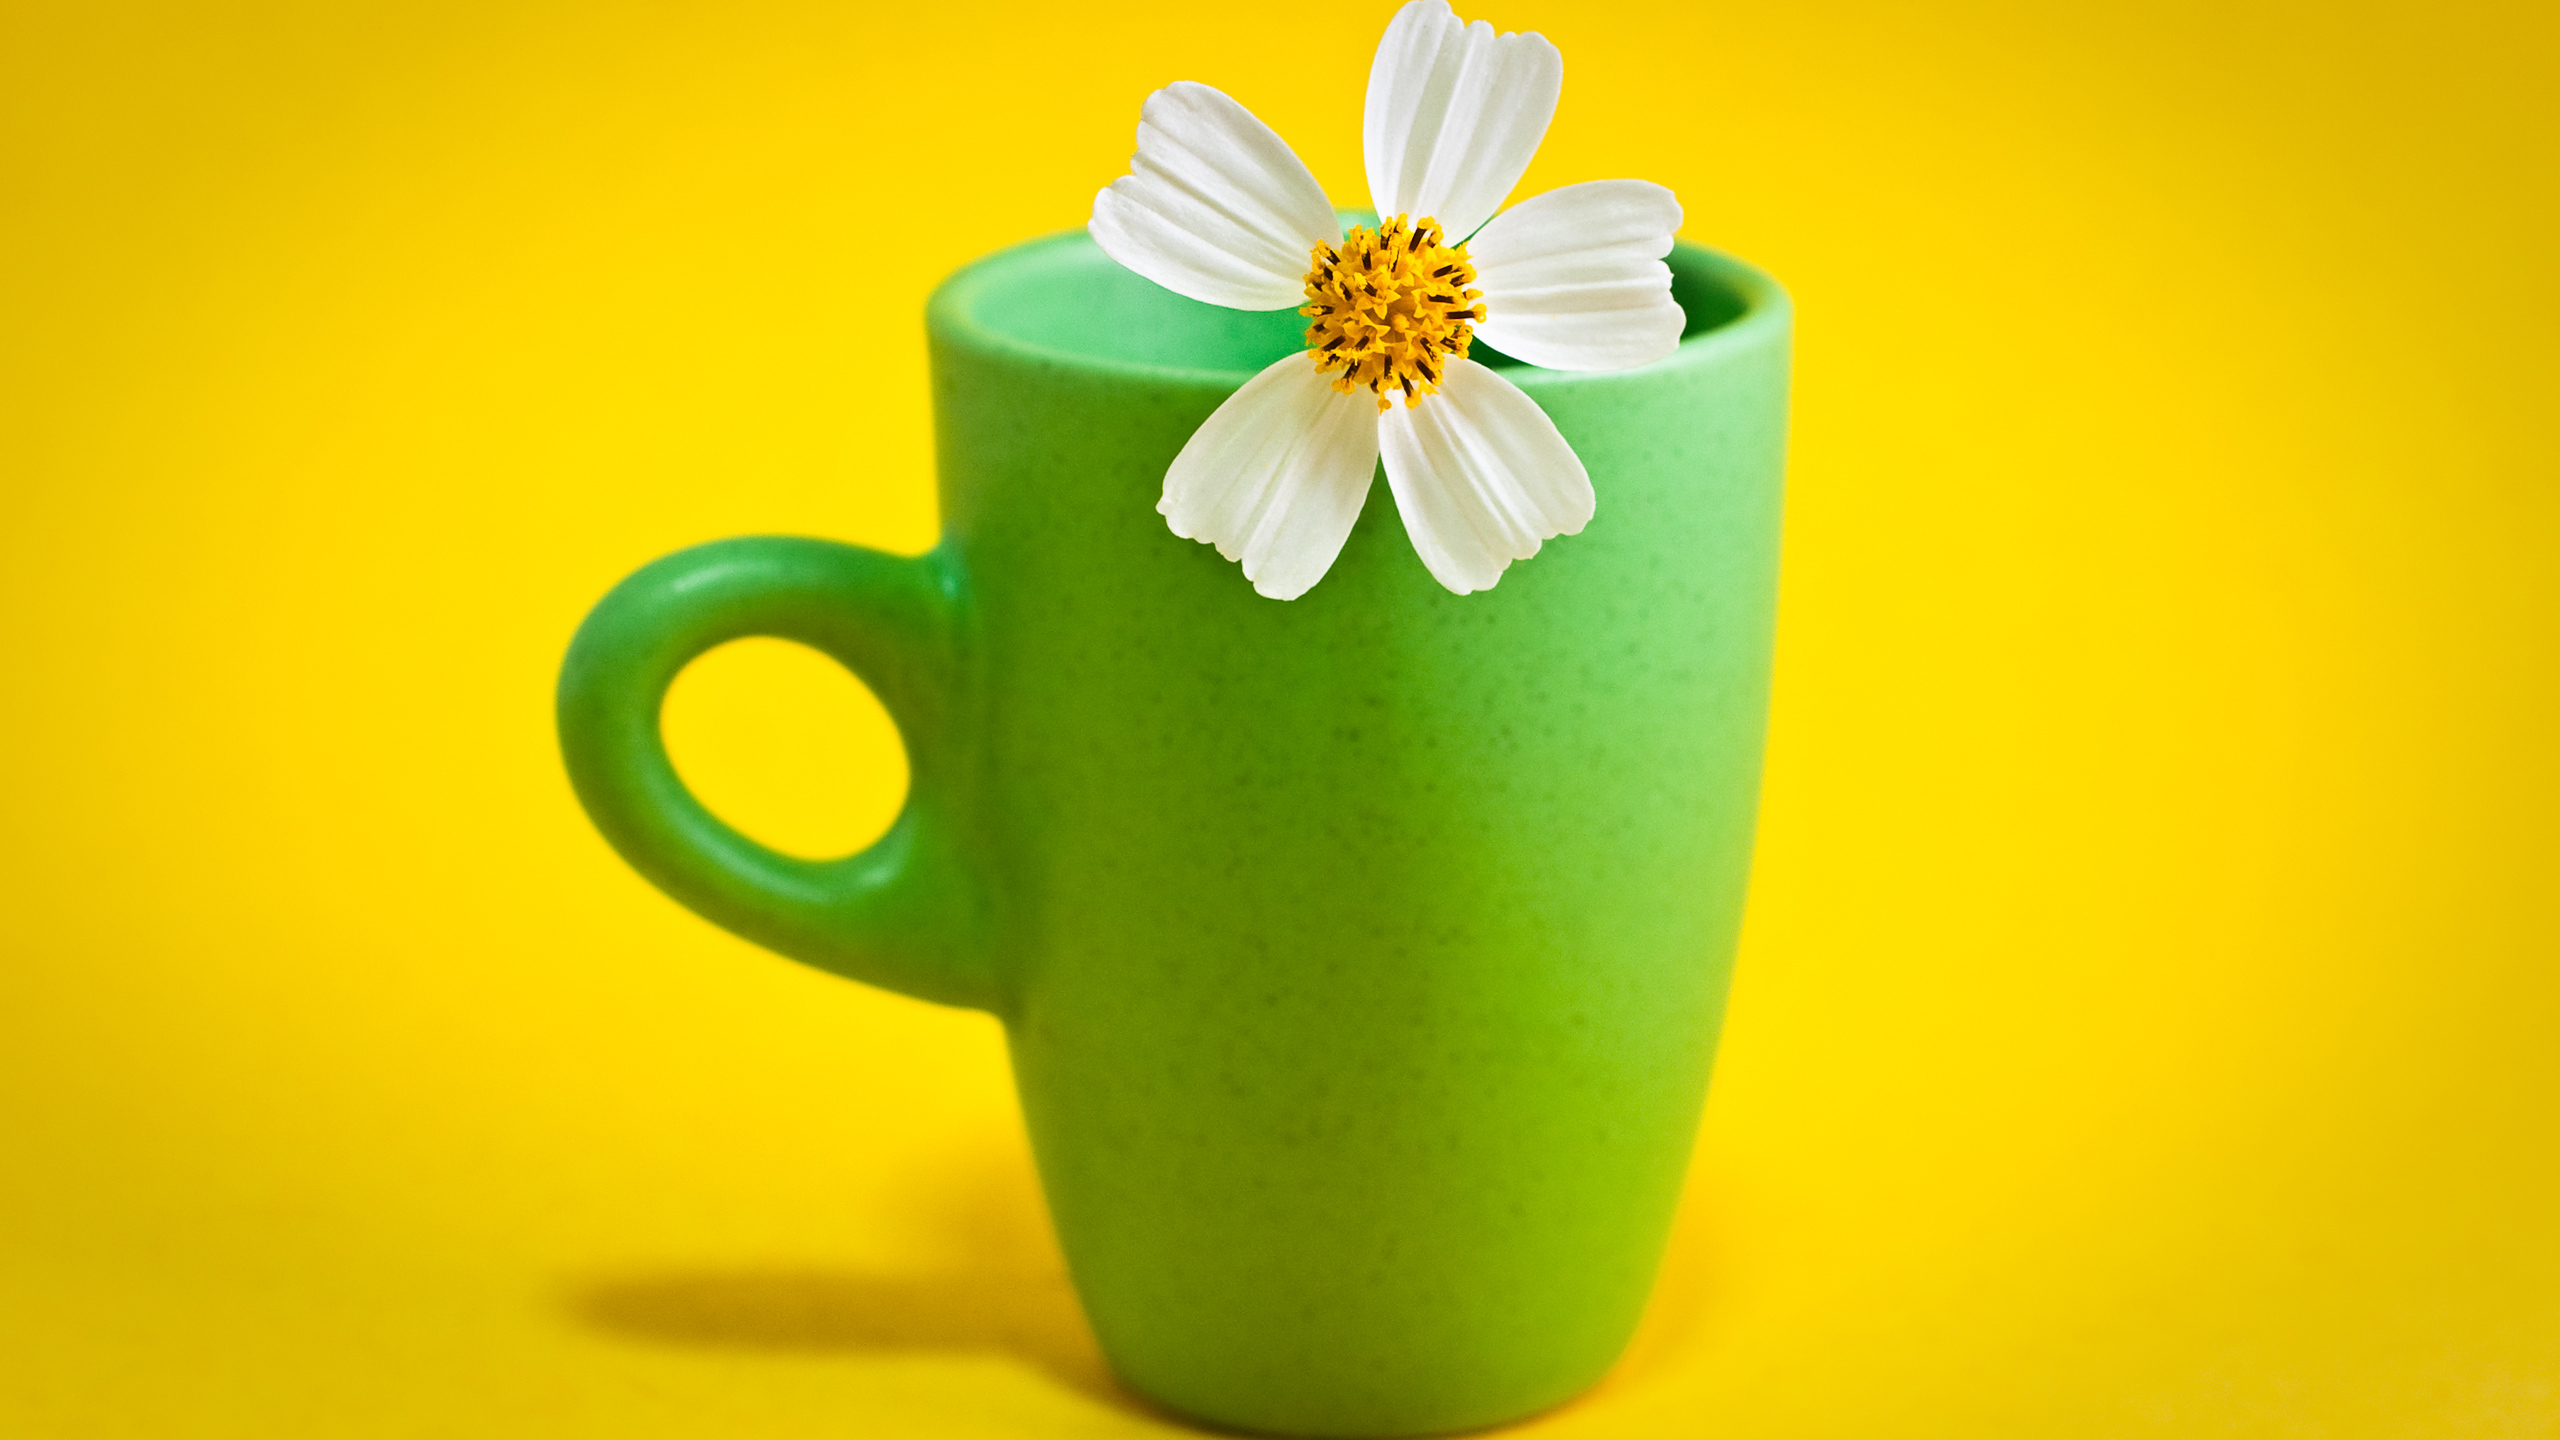 Flower Cup Wallpaper